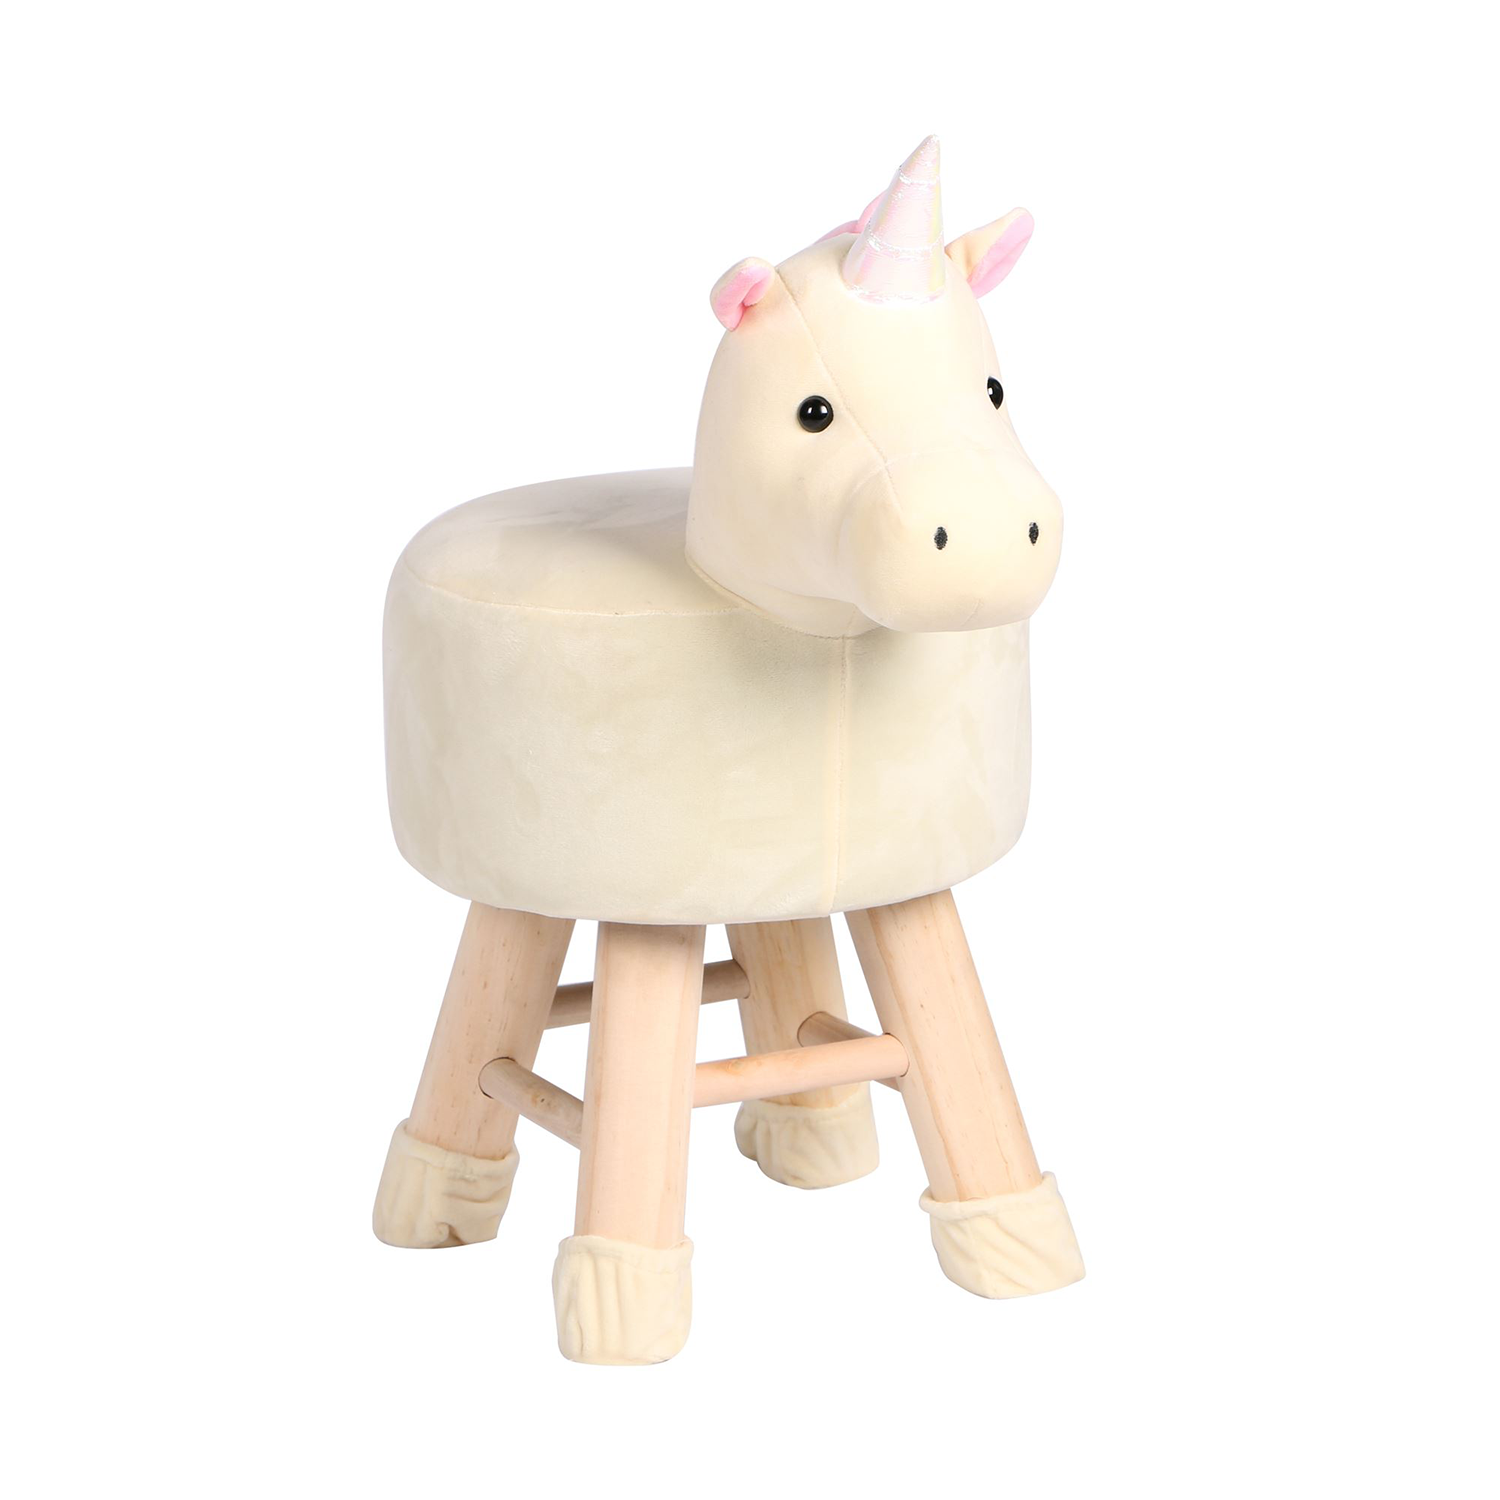 Wooden Animal Stool for Kids (Unicorn) | Round High Neck | With Removable Soft Fabric Cover | (Beige) - Best Price Company India